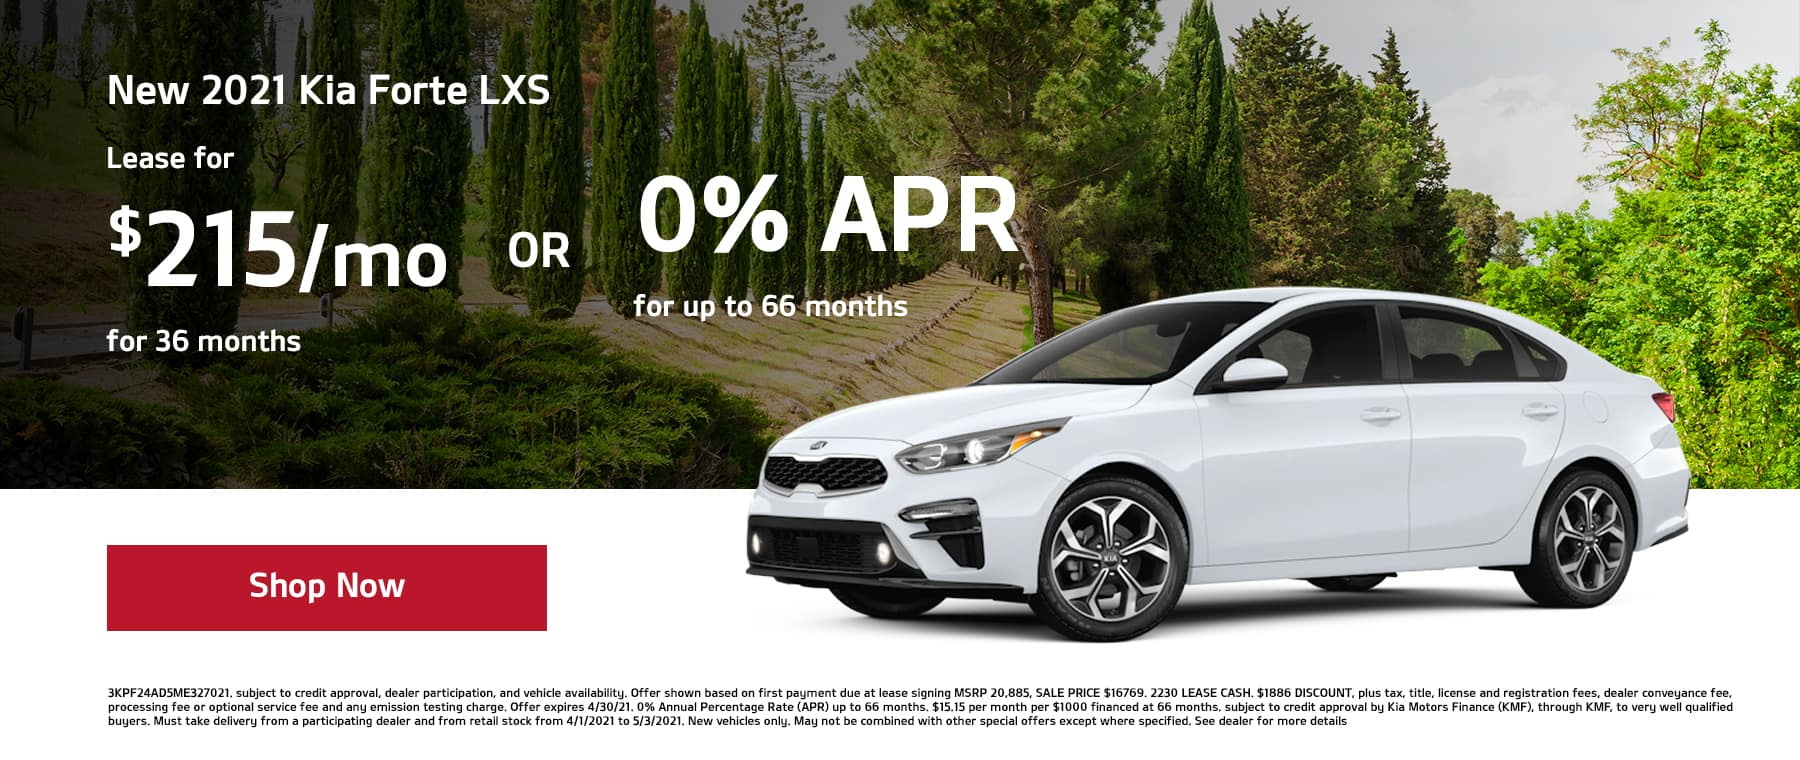 Lease a New 2021 Kia Forte LXS for $215/mo for 36mos or 0% APR for up to 66mos!